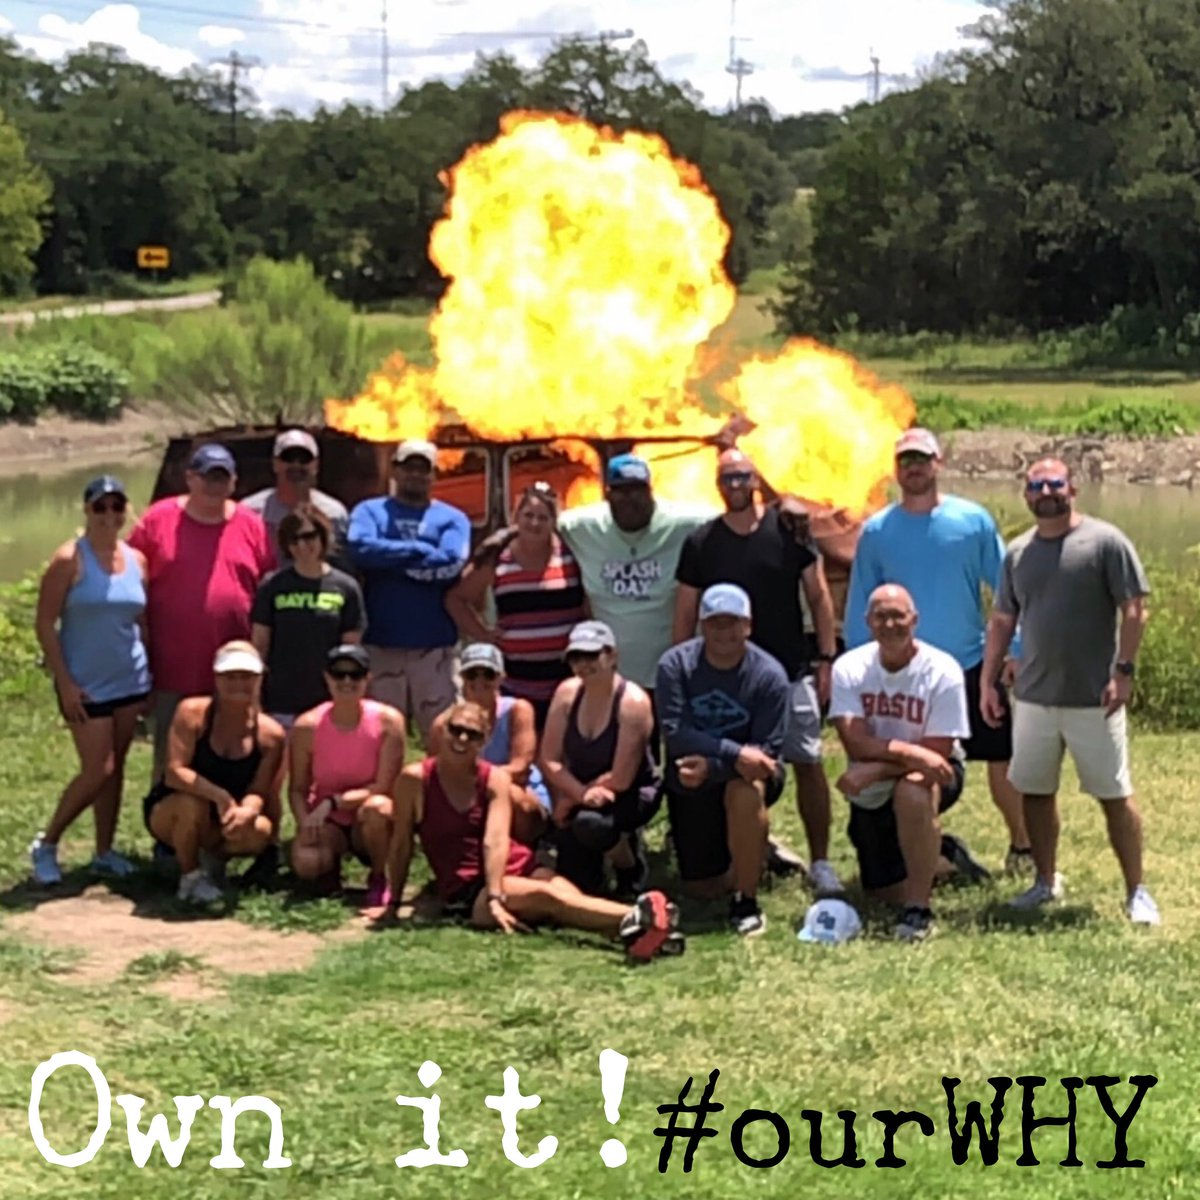 China Spring ISD Leadership Team Retreat 2019!! #ourWHY #Ownit!